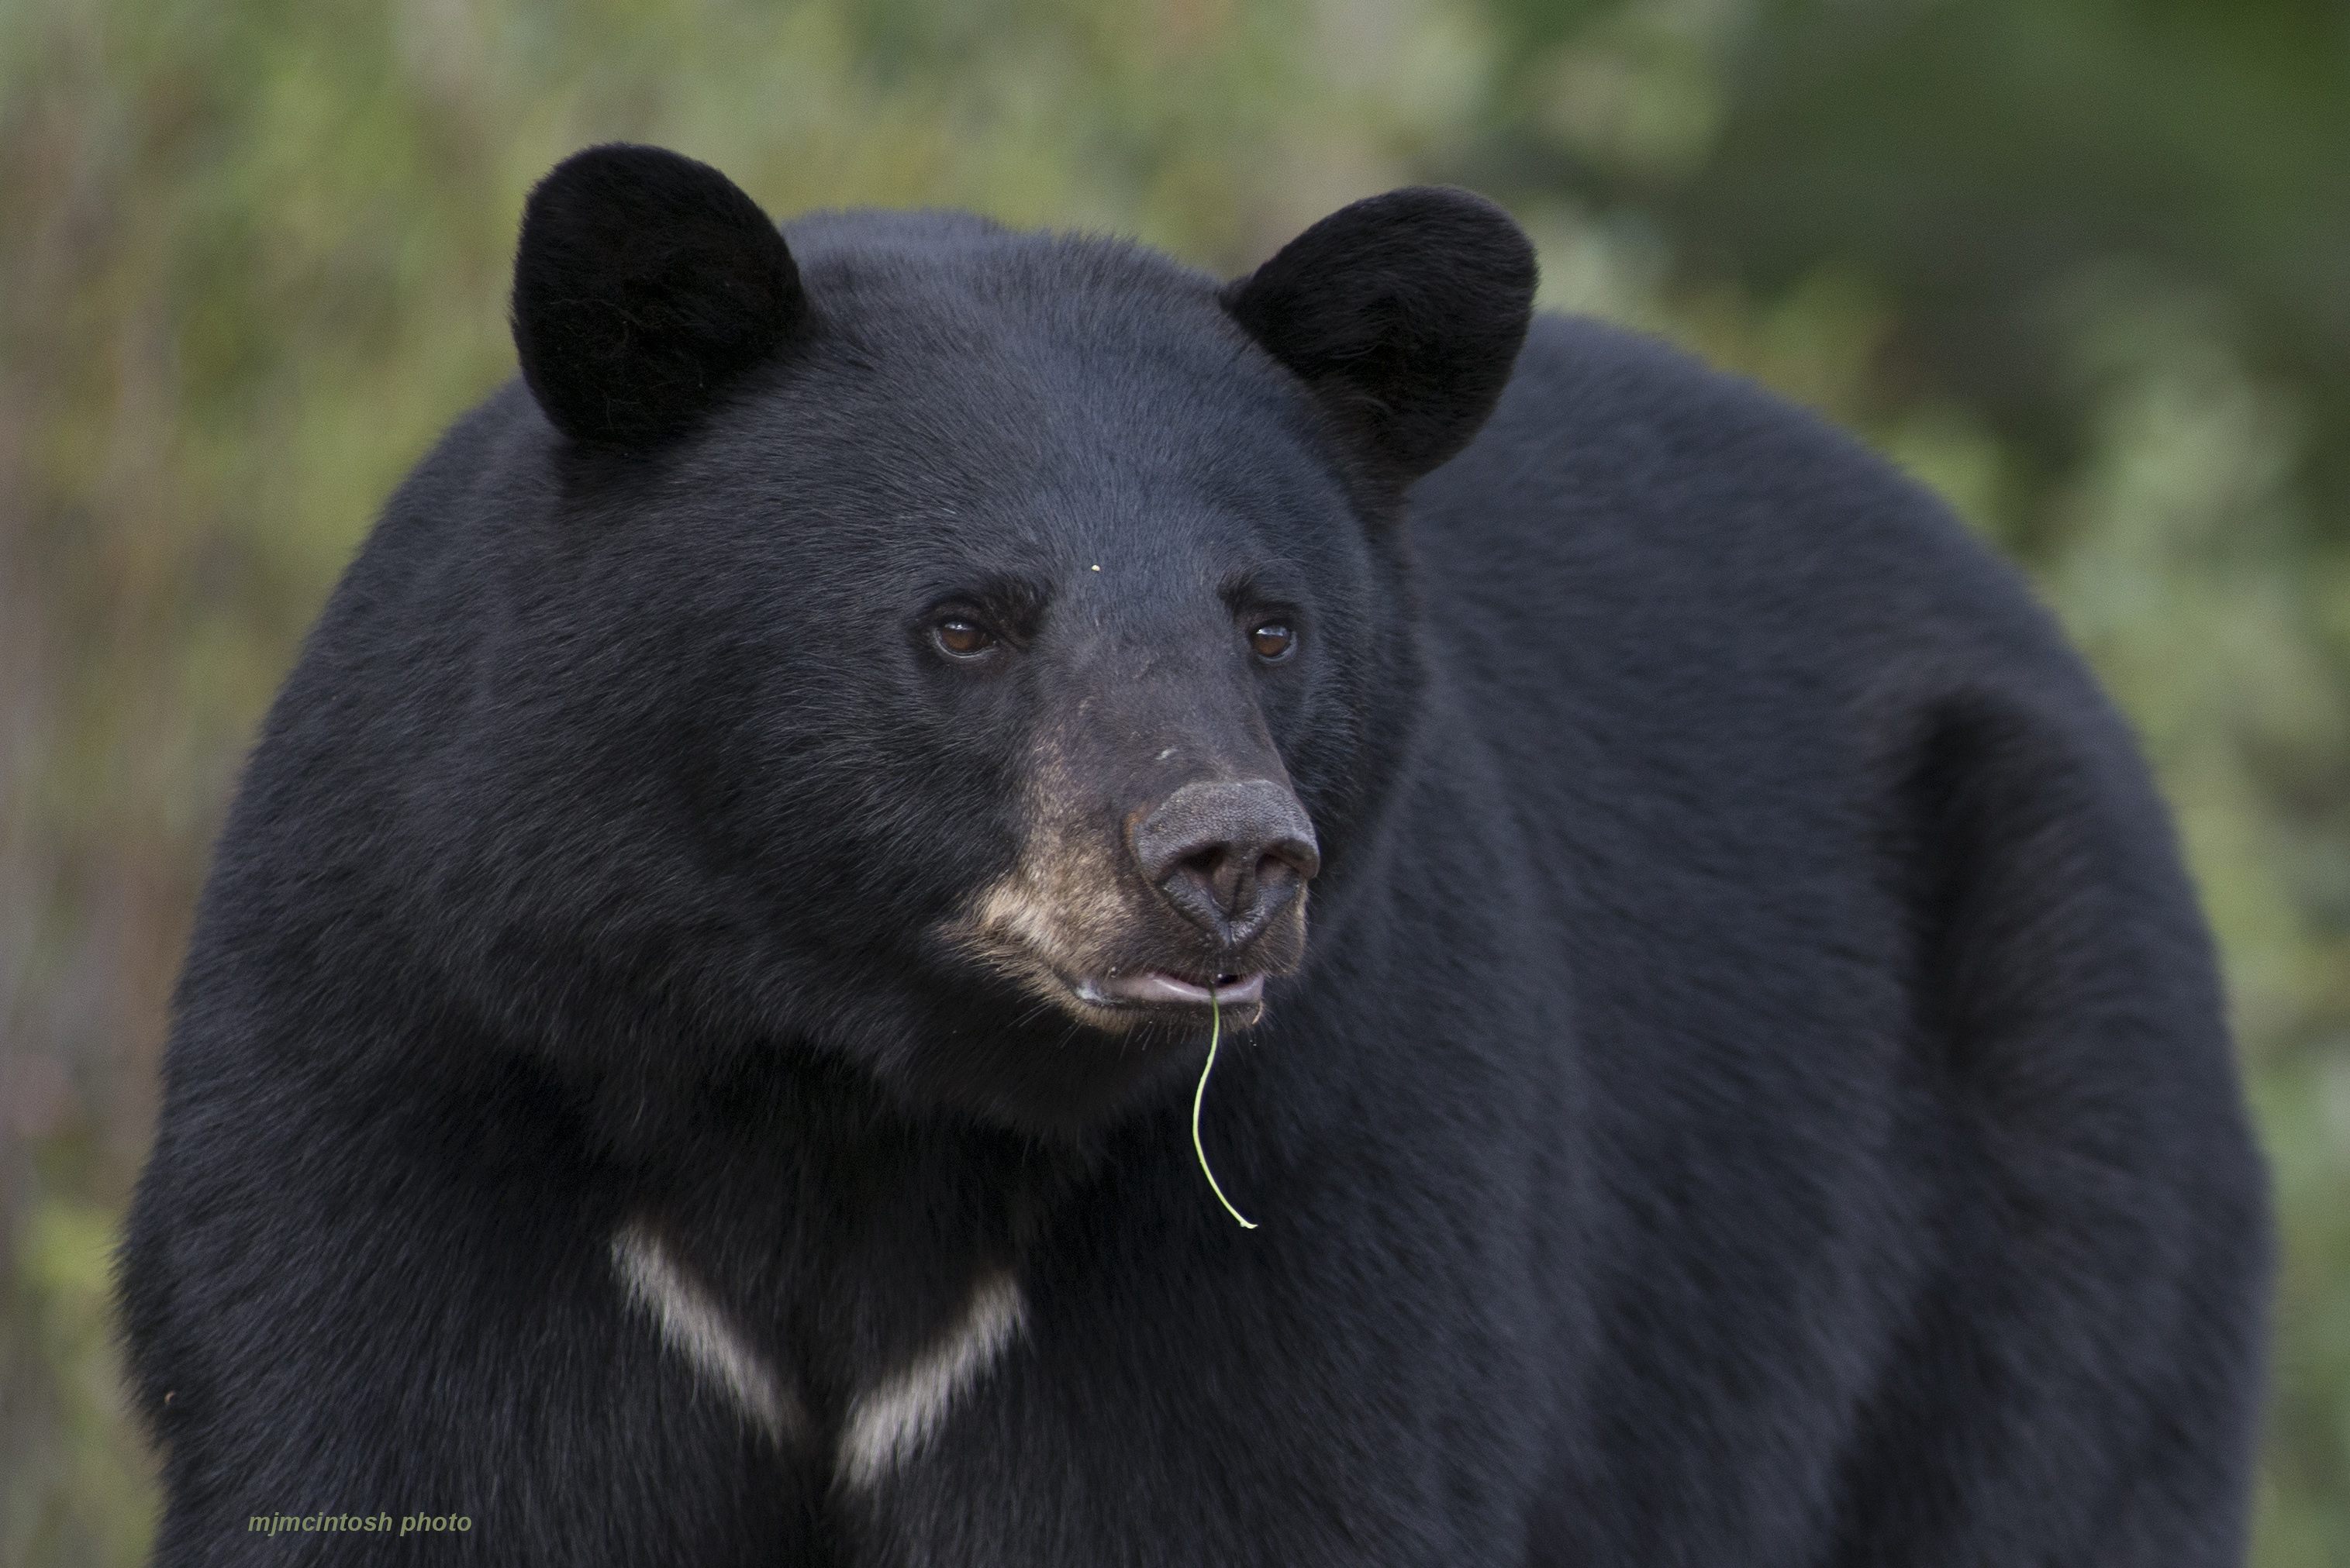 Black Bear Ecology | Wise About Bears - photo#25